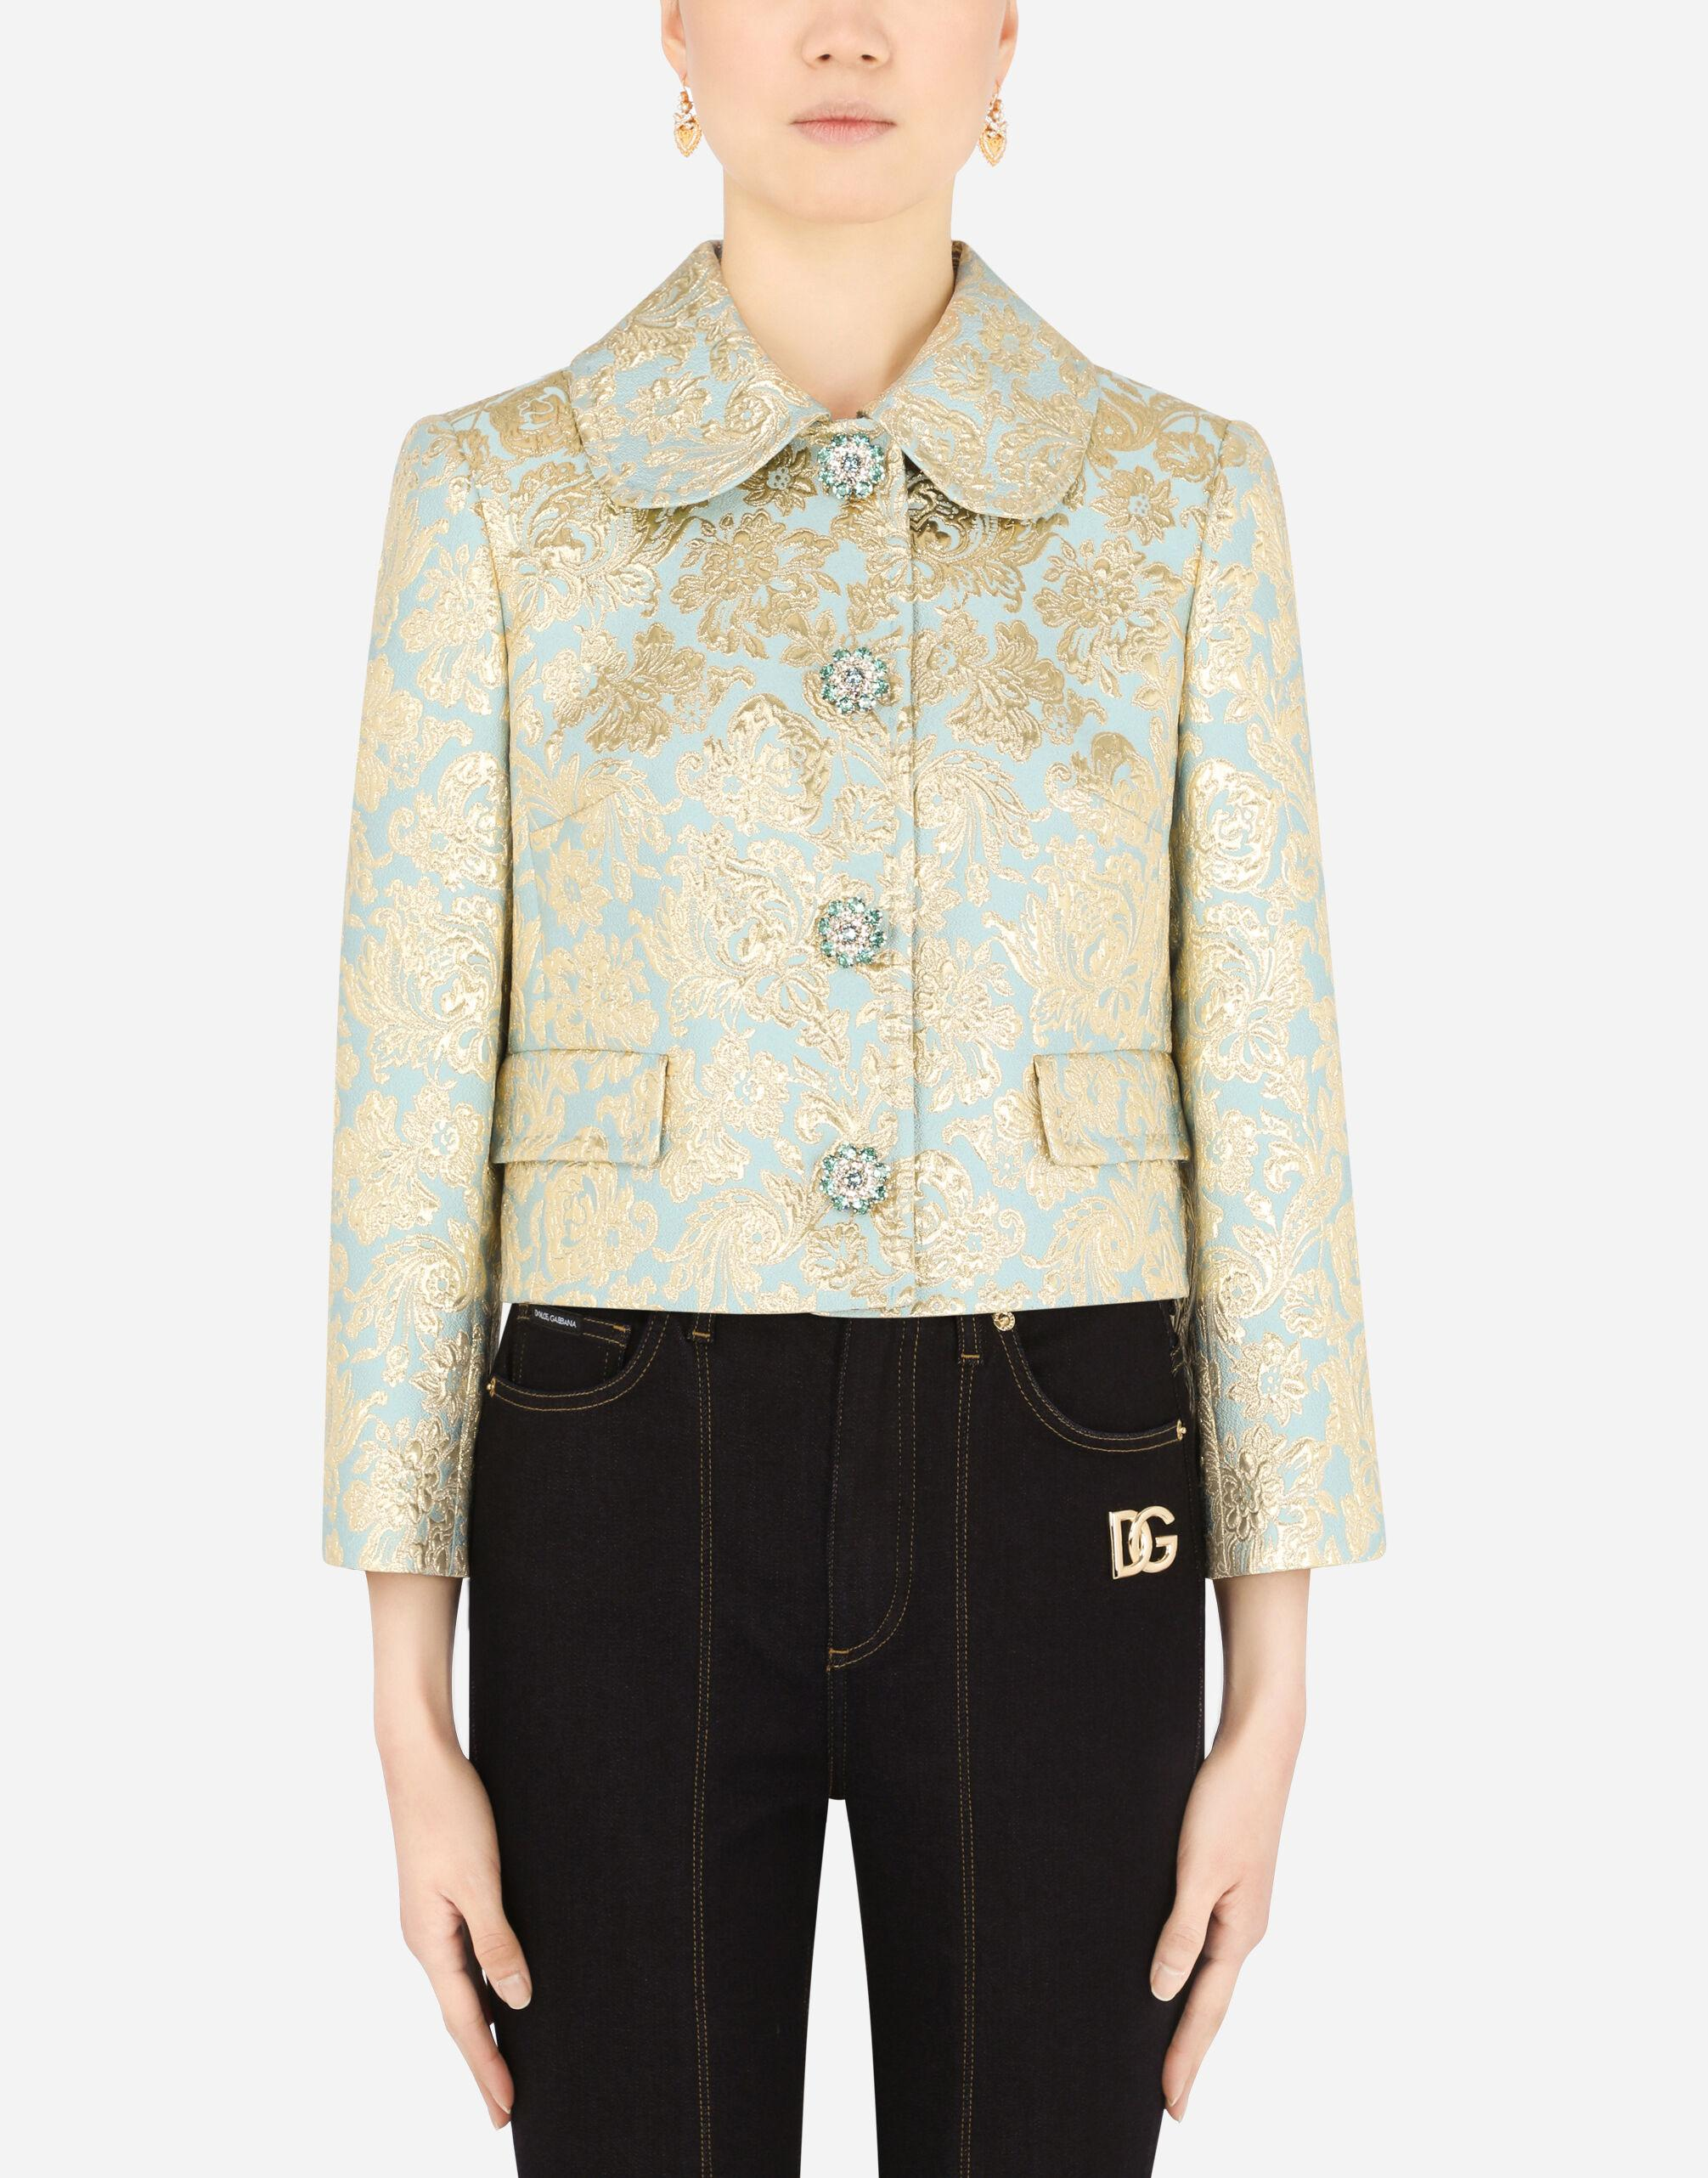 Cropped lamé jacquard jacket with bejeweled buttons